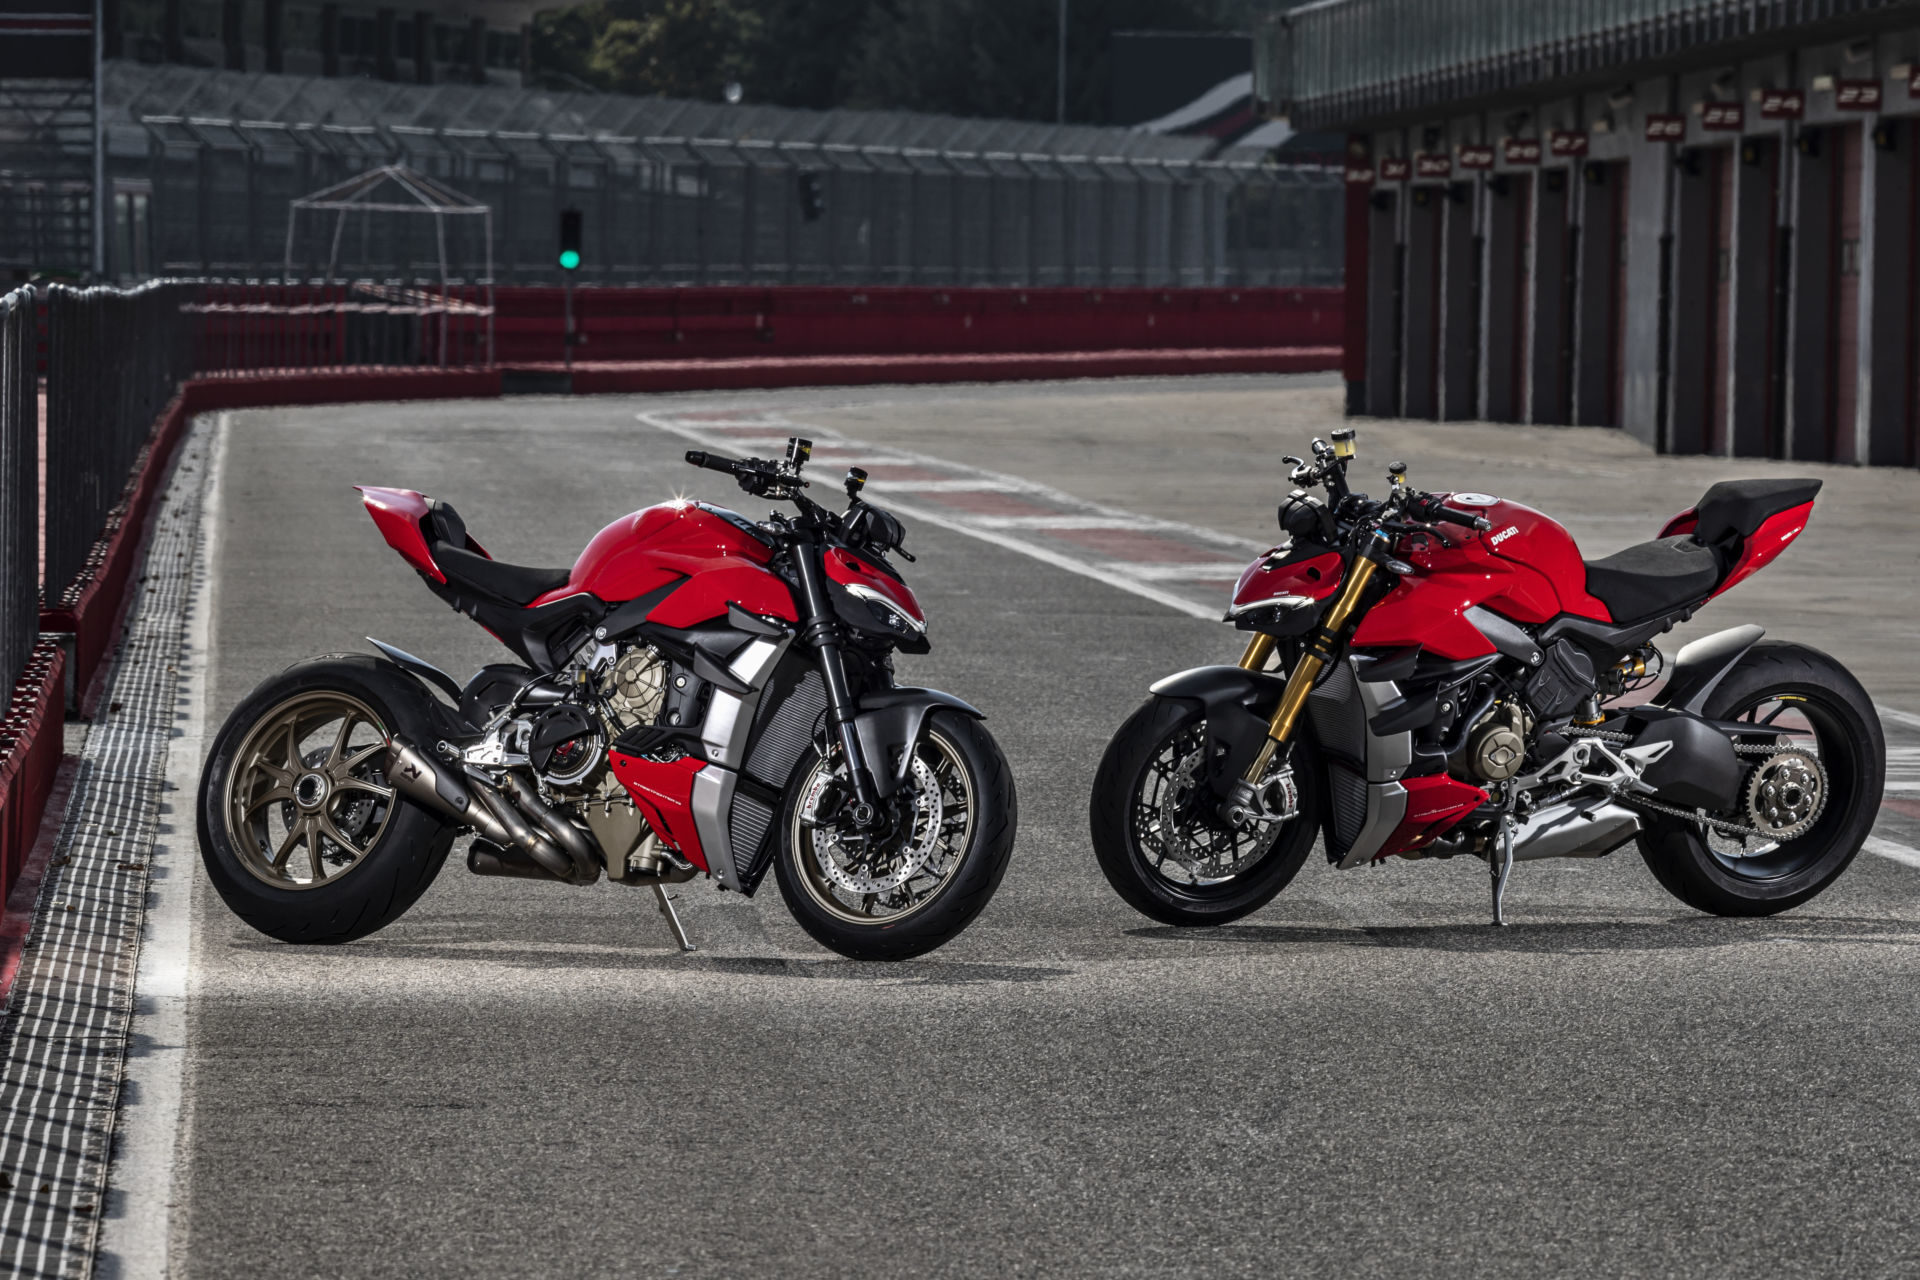 A 2020 Ducati Streetfighter V4 (left) and V4 S (right). Photo courtesy of Ducati North America.